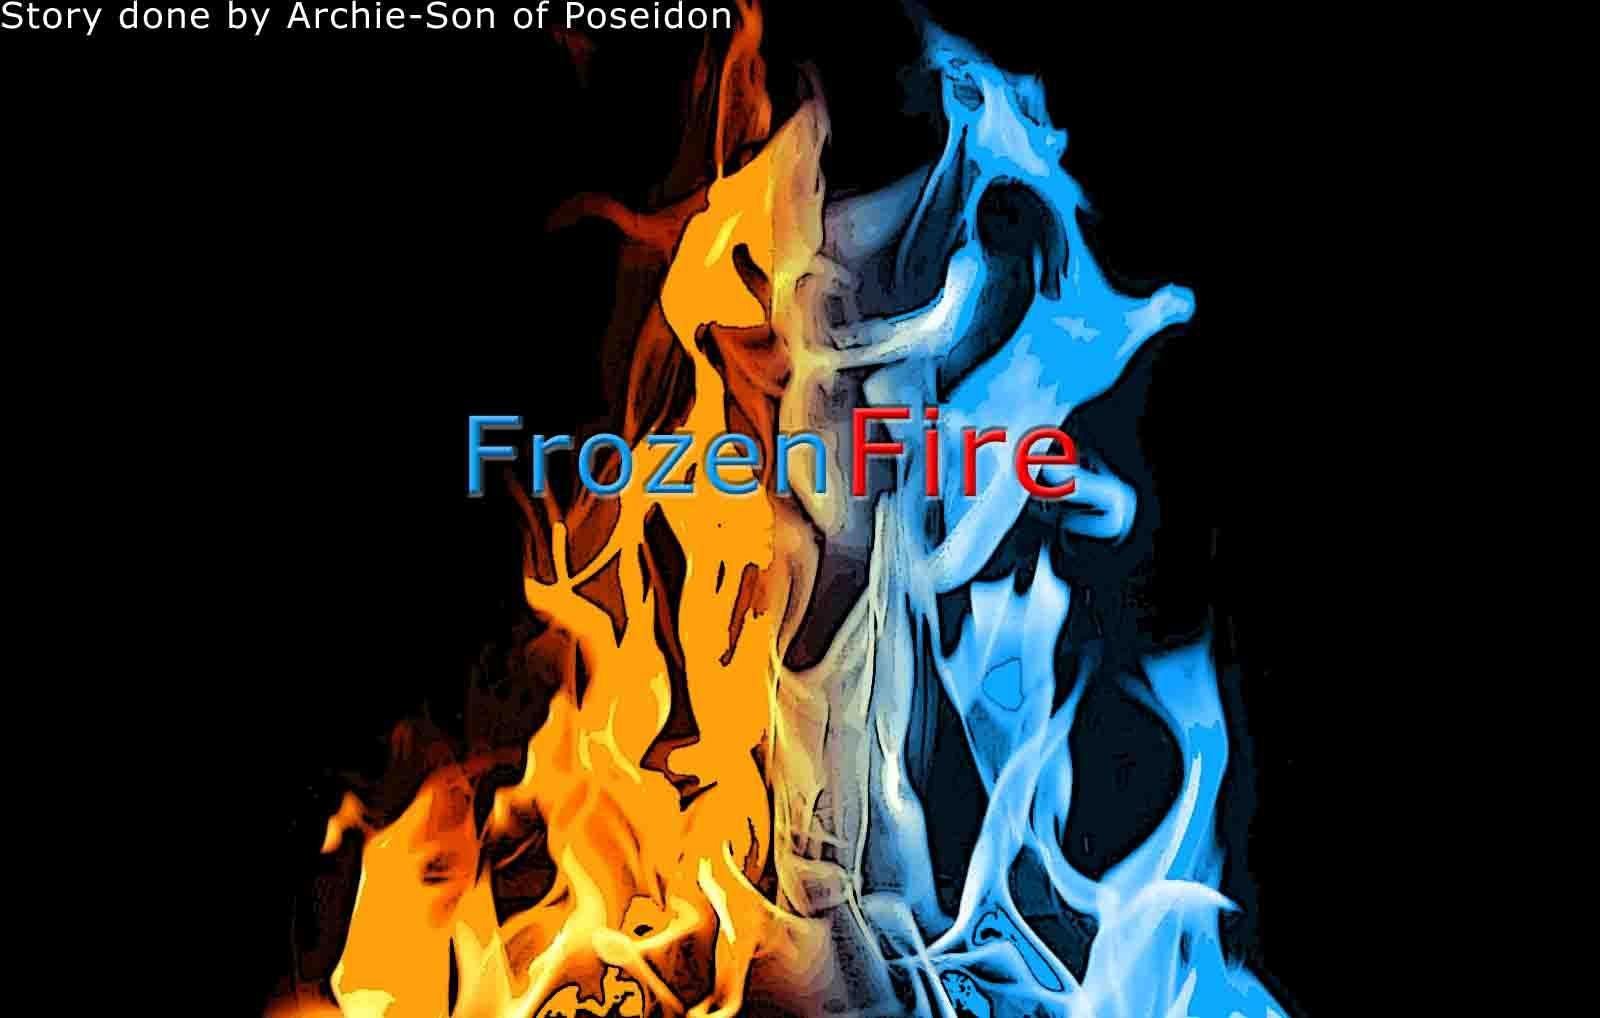 One side of you is a fire the pther is ice. Which side are you on?